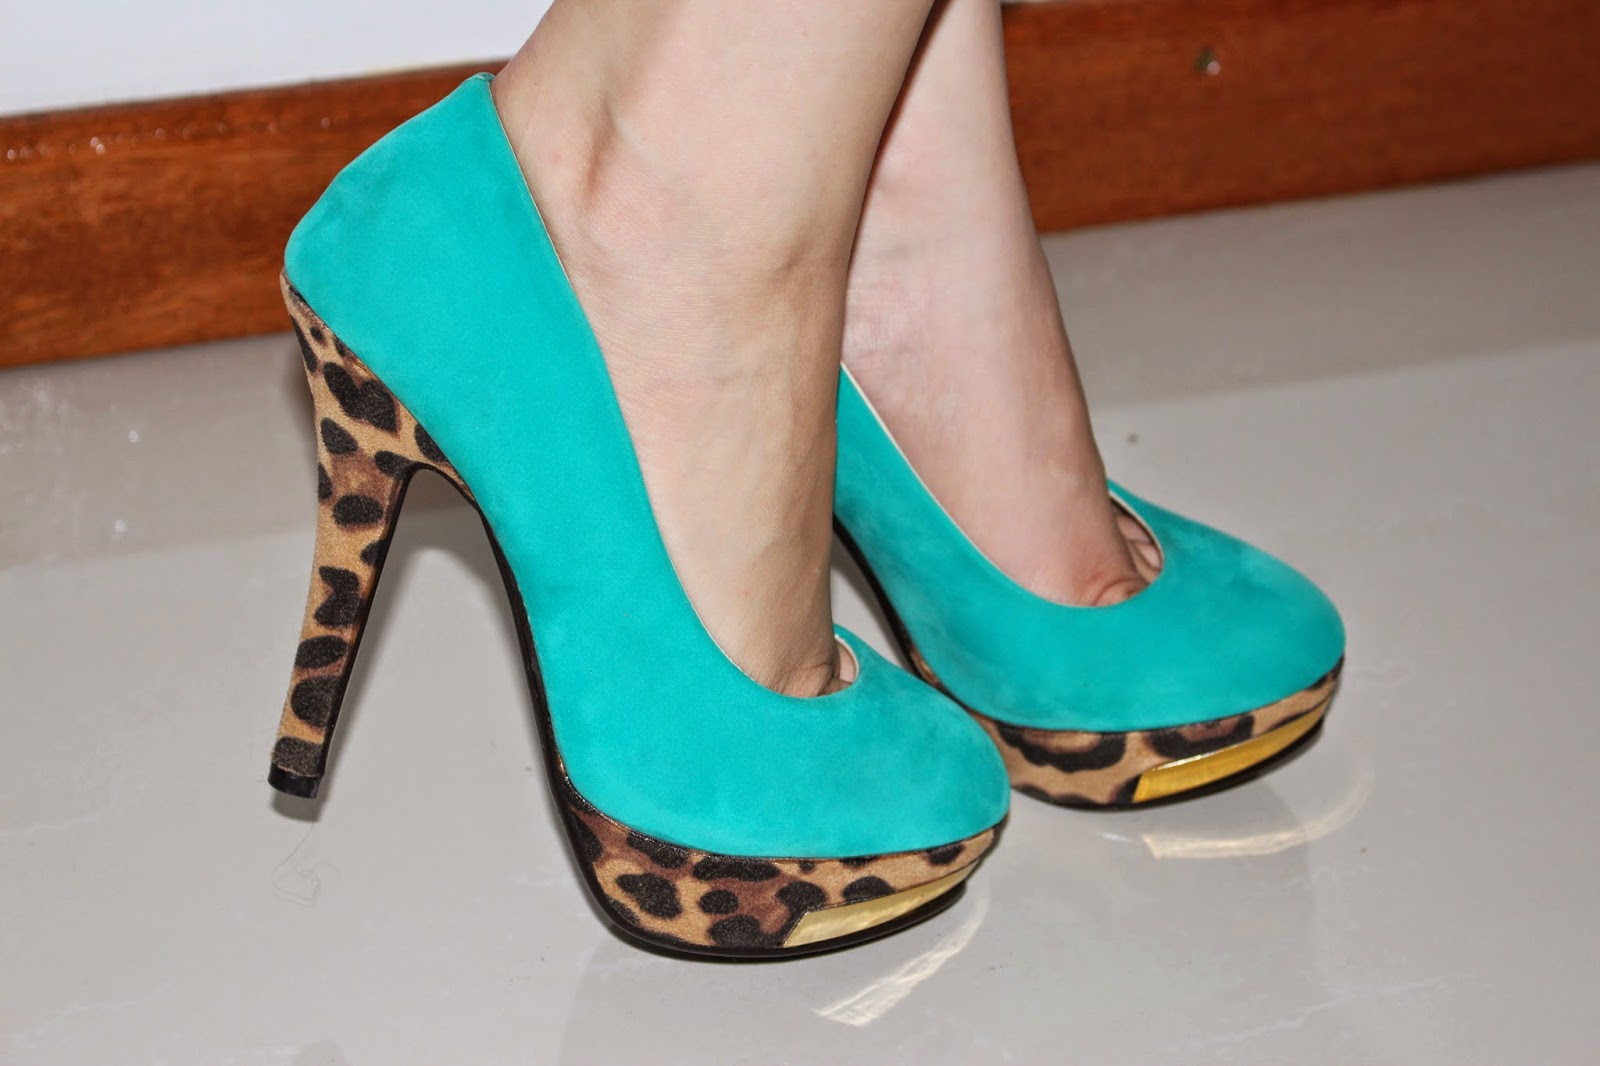 http://www.martofchina.com/womans-leopard-paneled-turquoises-stiletto-high-heels-with-metal-ornament-g82662.html?lkid=658